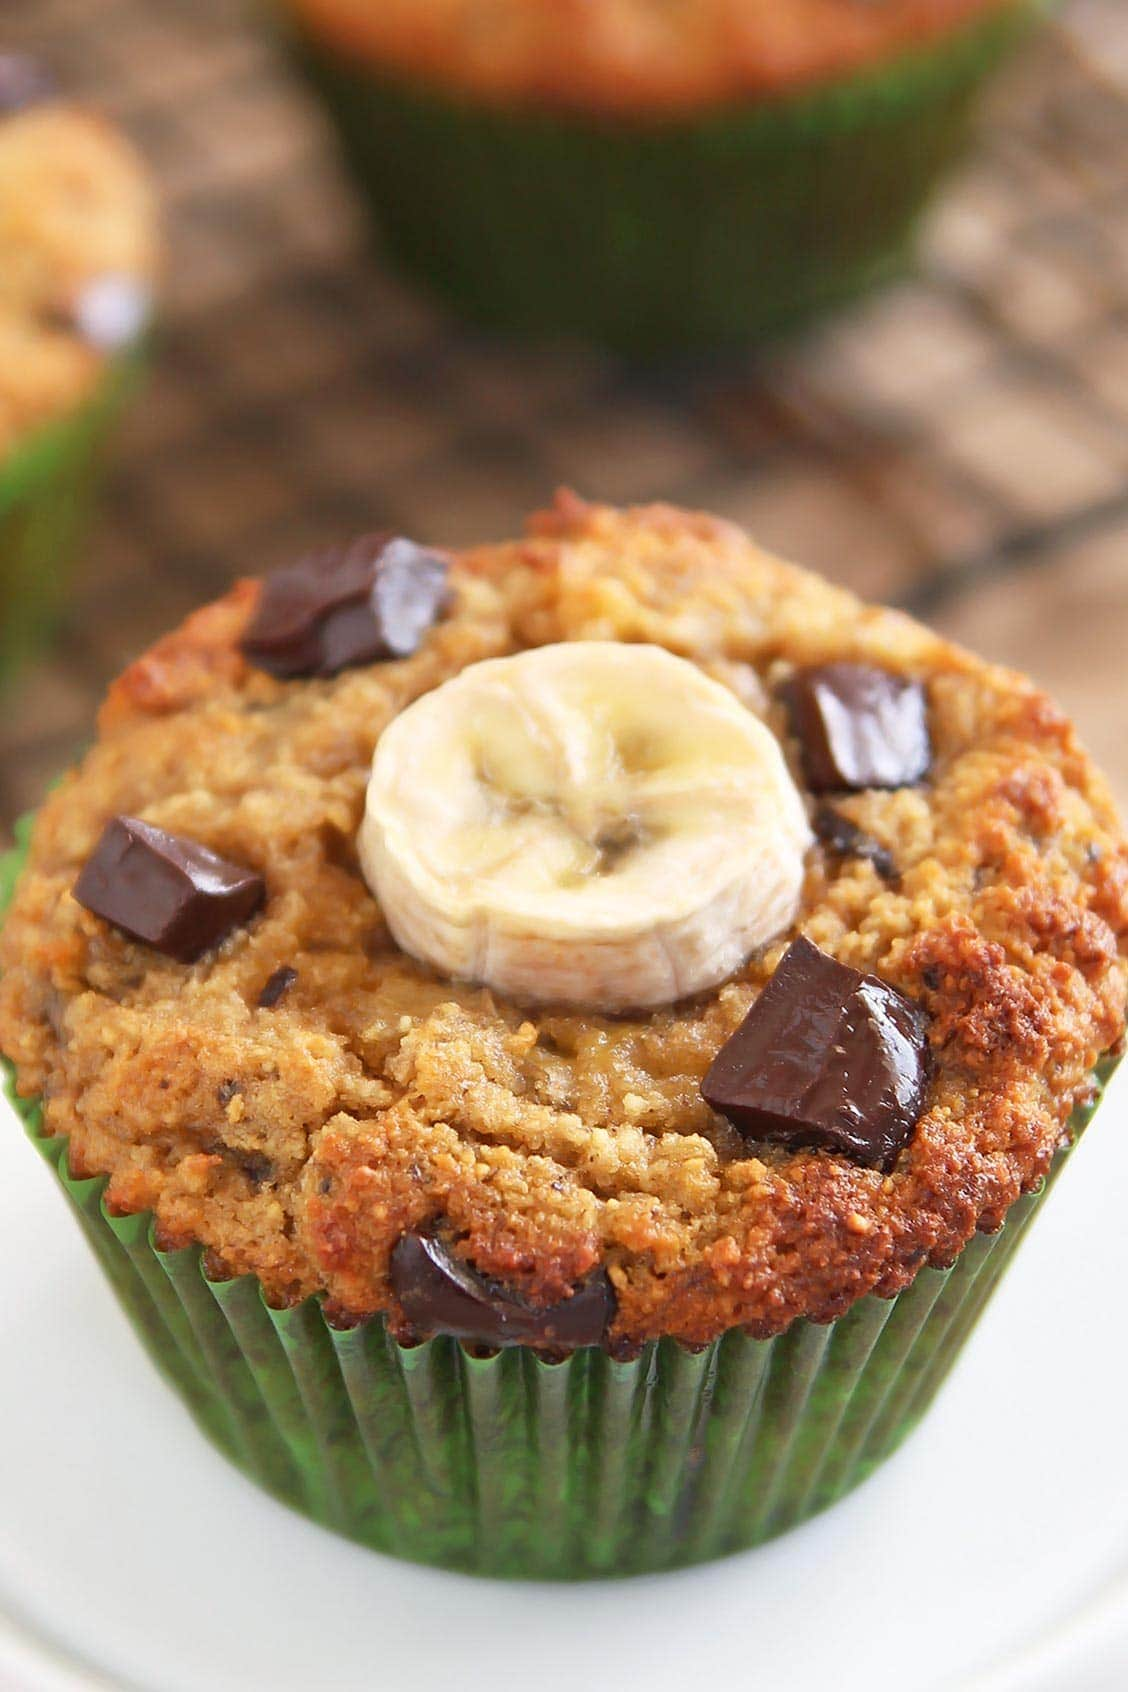 Coconut Flour Chocolate Chip Banana Muffin